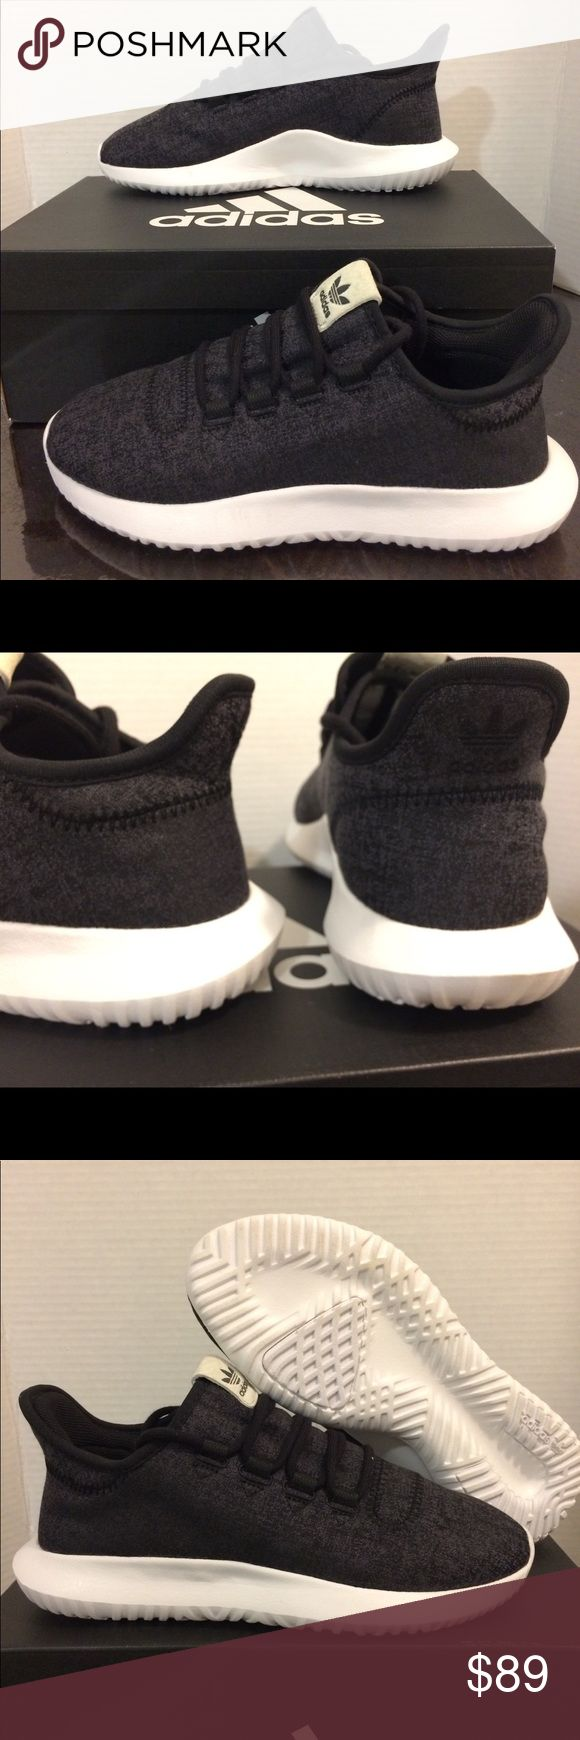 New Adidas Tubular Shadow Charcoal Black unisex New Adidas   Size 7, 8  Very great looking athletic shoes with amazing comfort. Don't end up paying those high prices when you can get them for an affordable price.  No refunds No low ballers Authentic   NMD, AVD, EQT, Mastermind, Primeknit, original, all stars, Bape, Ultraboost, tubular, Zx flux, adidas women, adidas running shoes, women's running shoes, women running track basketball soccer. Girly shoes NMD adidas, Jordan 1, Jordan 2, Jordan…